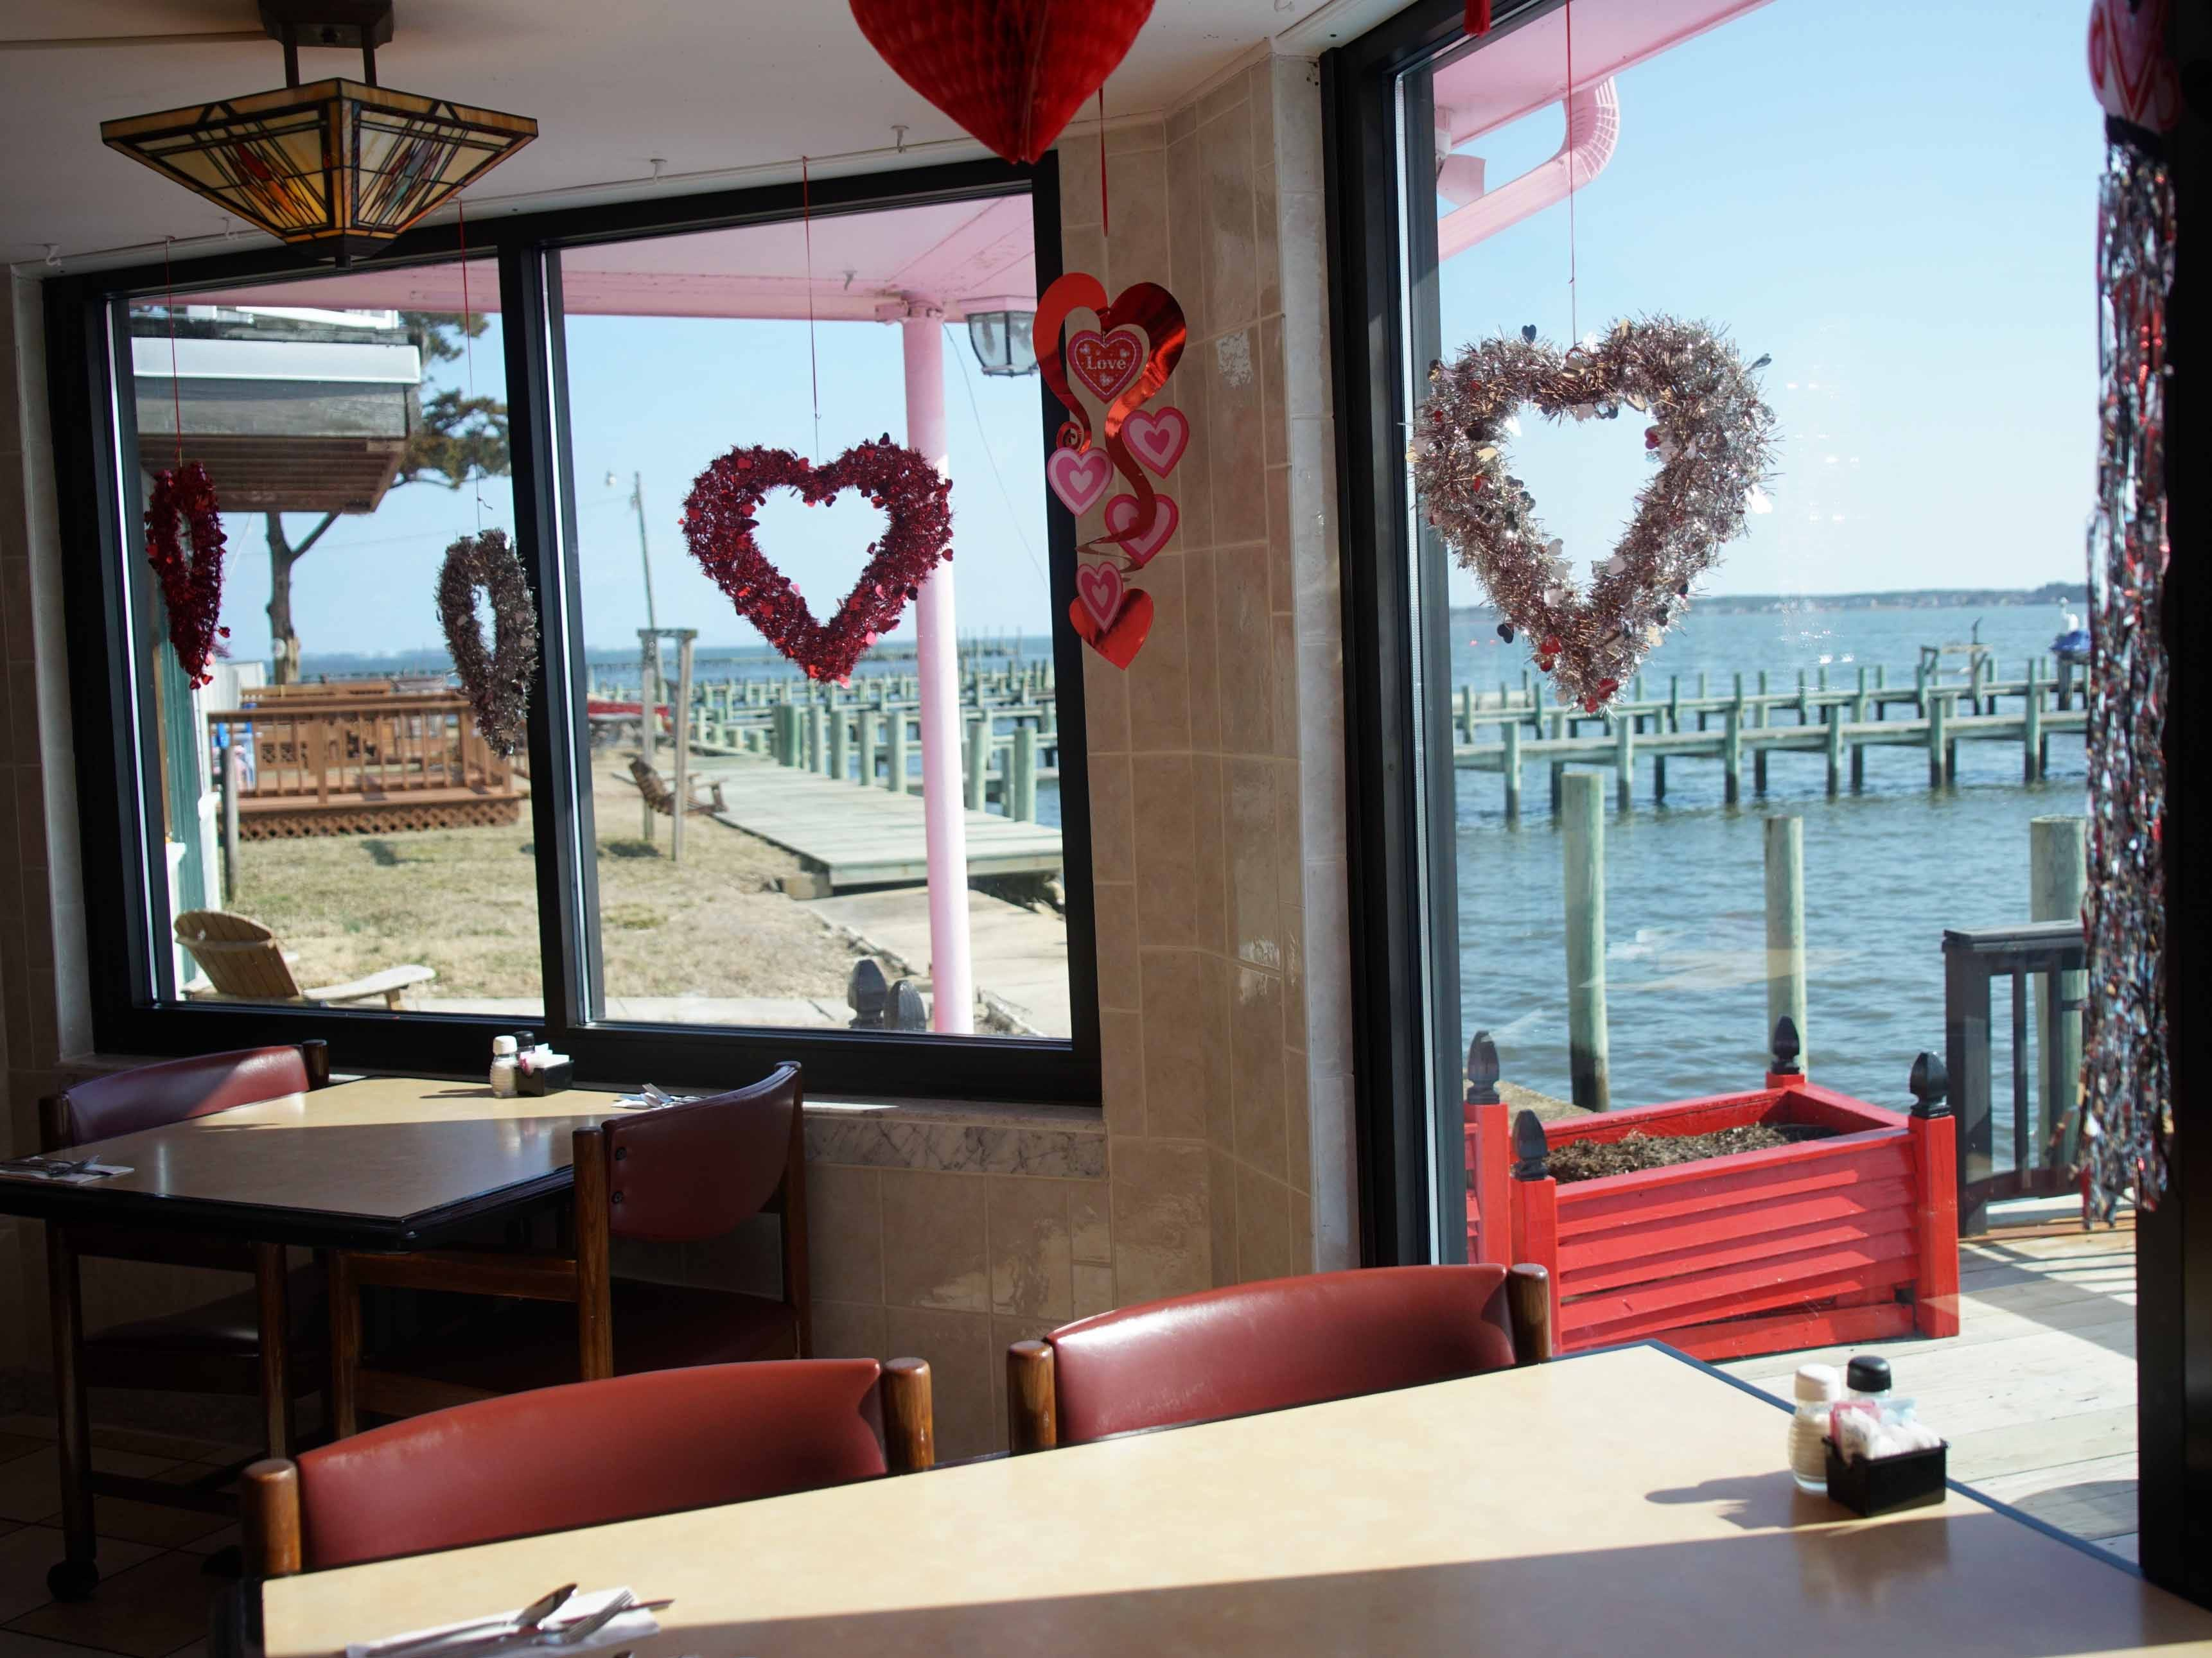 A heart hangs in the window of Serendipity Restaurant in Oak Orchard that overlooks Indian River.